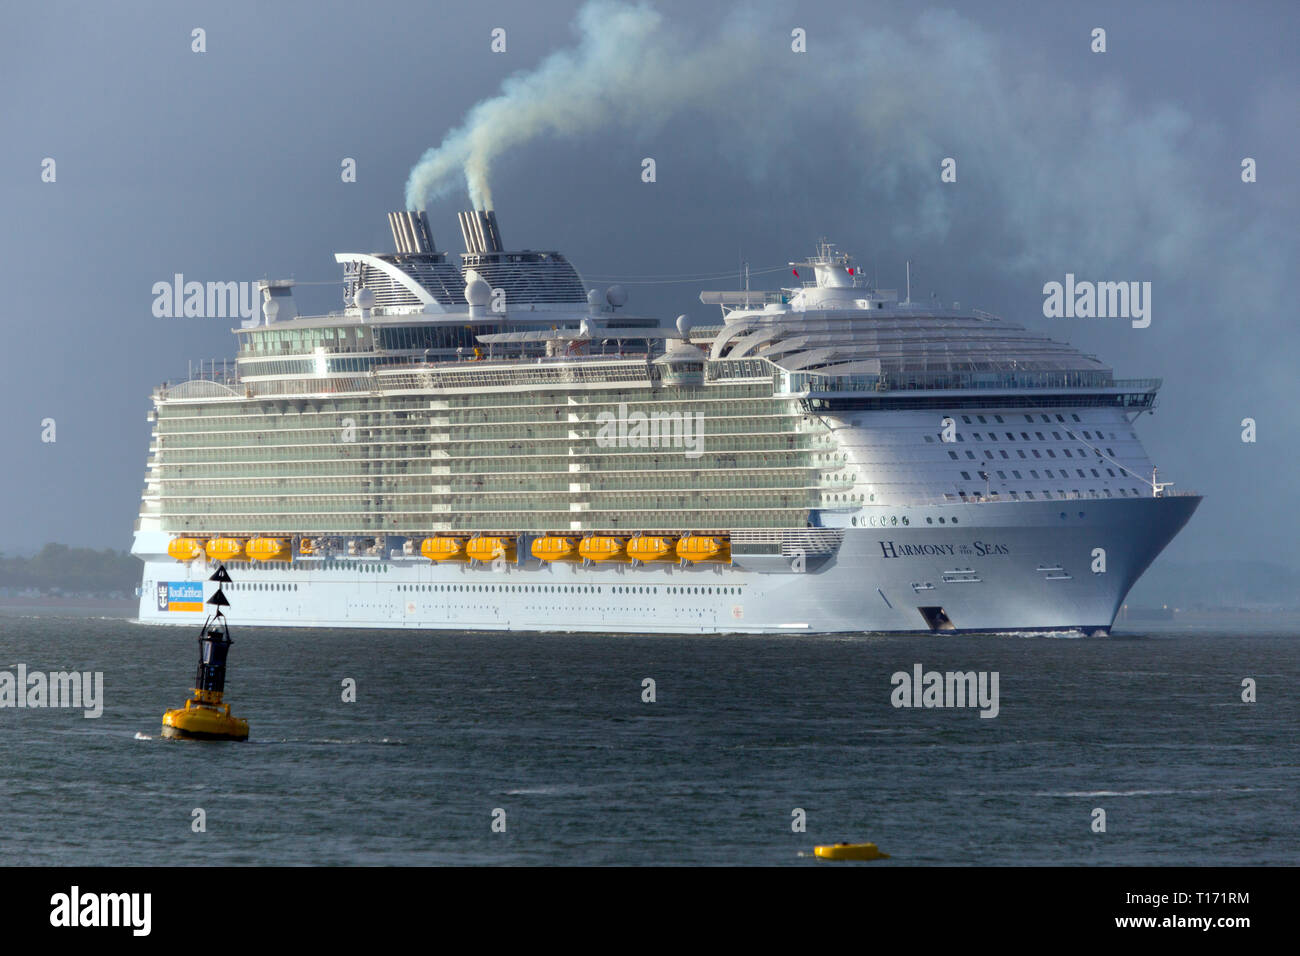 huge,massive,Pollution,Harmony of the Sea, Cruise Liner, ship, Cowes, Isle of Wight, The Solent,leaving,Southampton,Port,Terminal,England, UK, - Stock Image